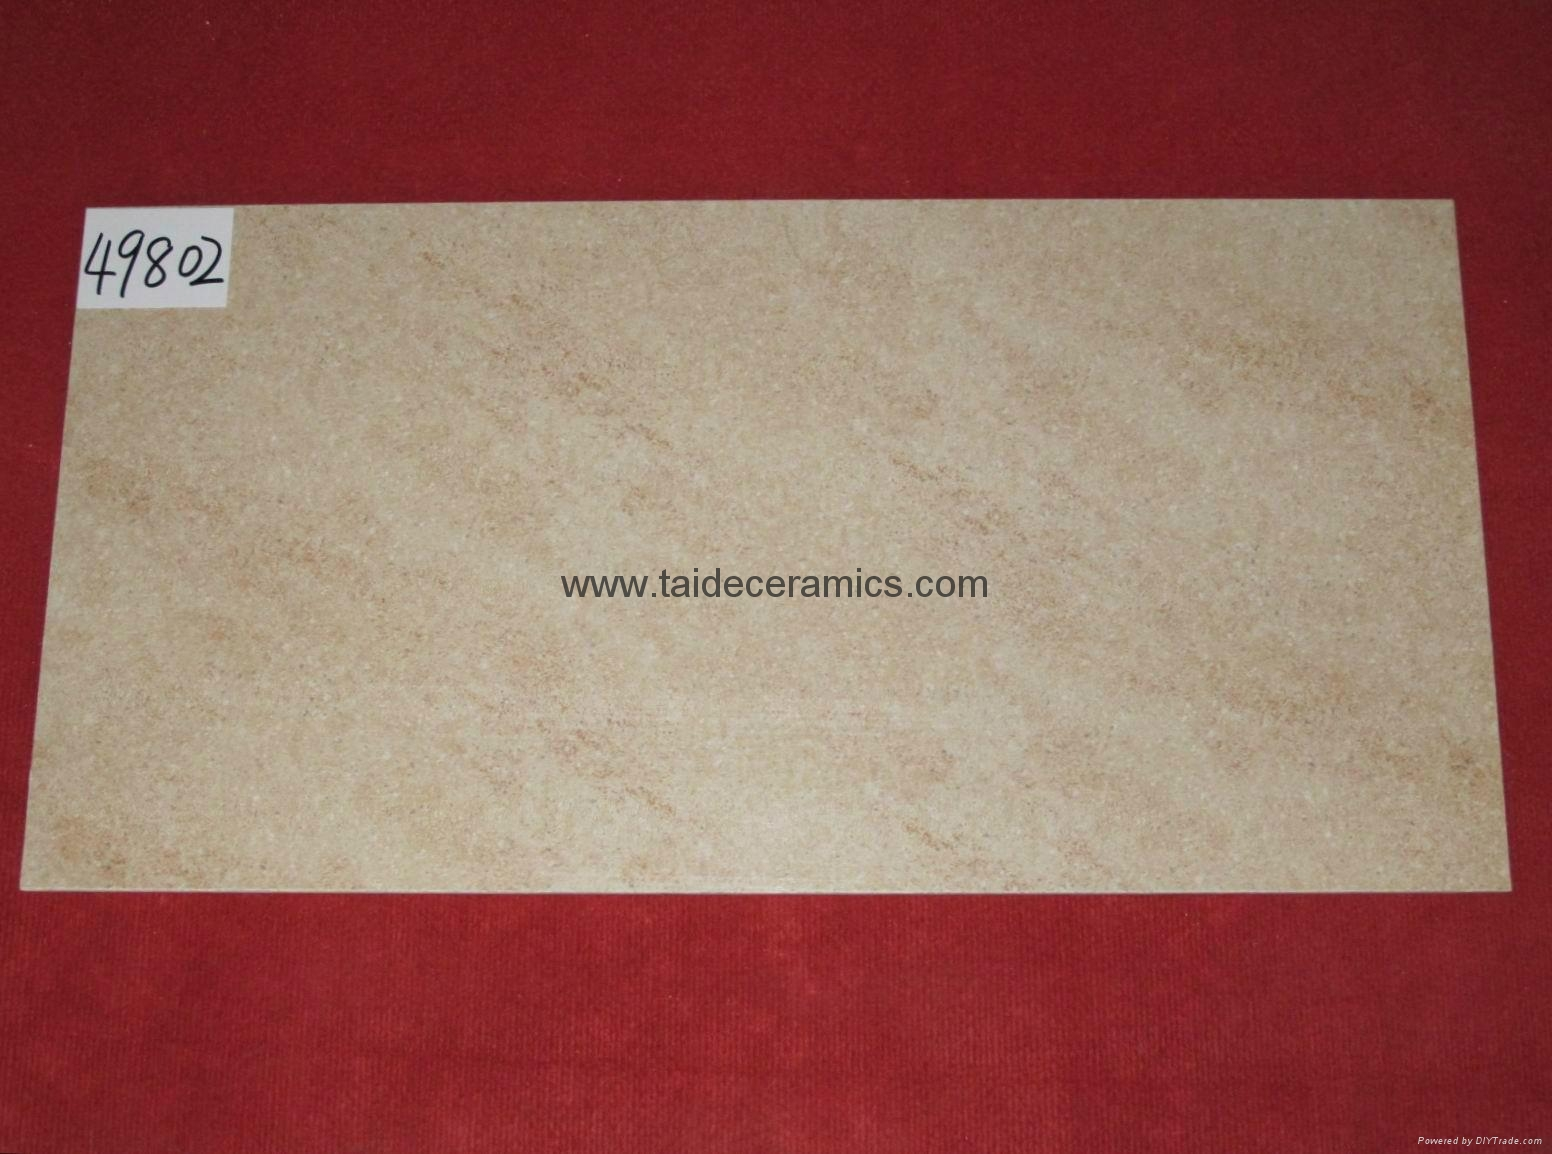 Hot Sell Full Polished Glazed Tiles Flooing Tiles  450*900mm  49712 1